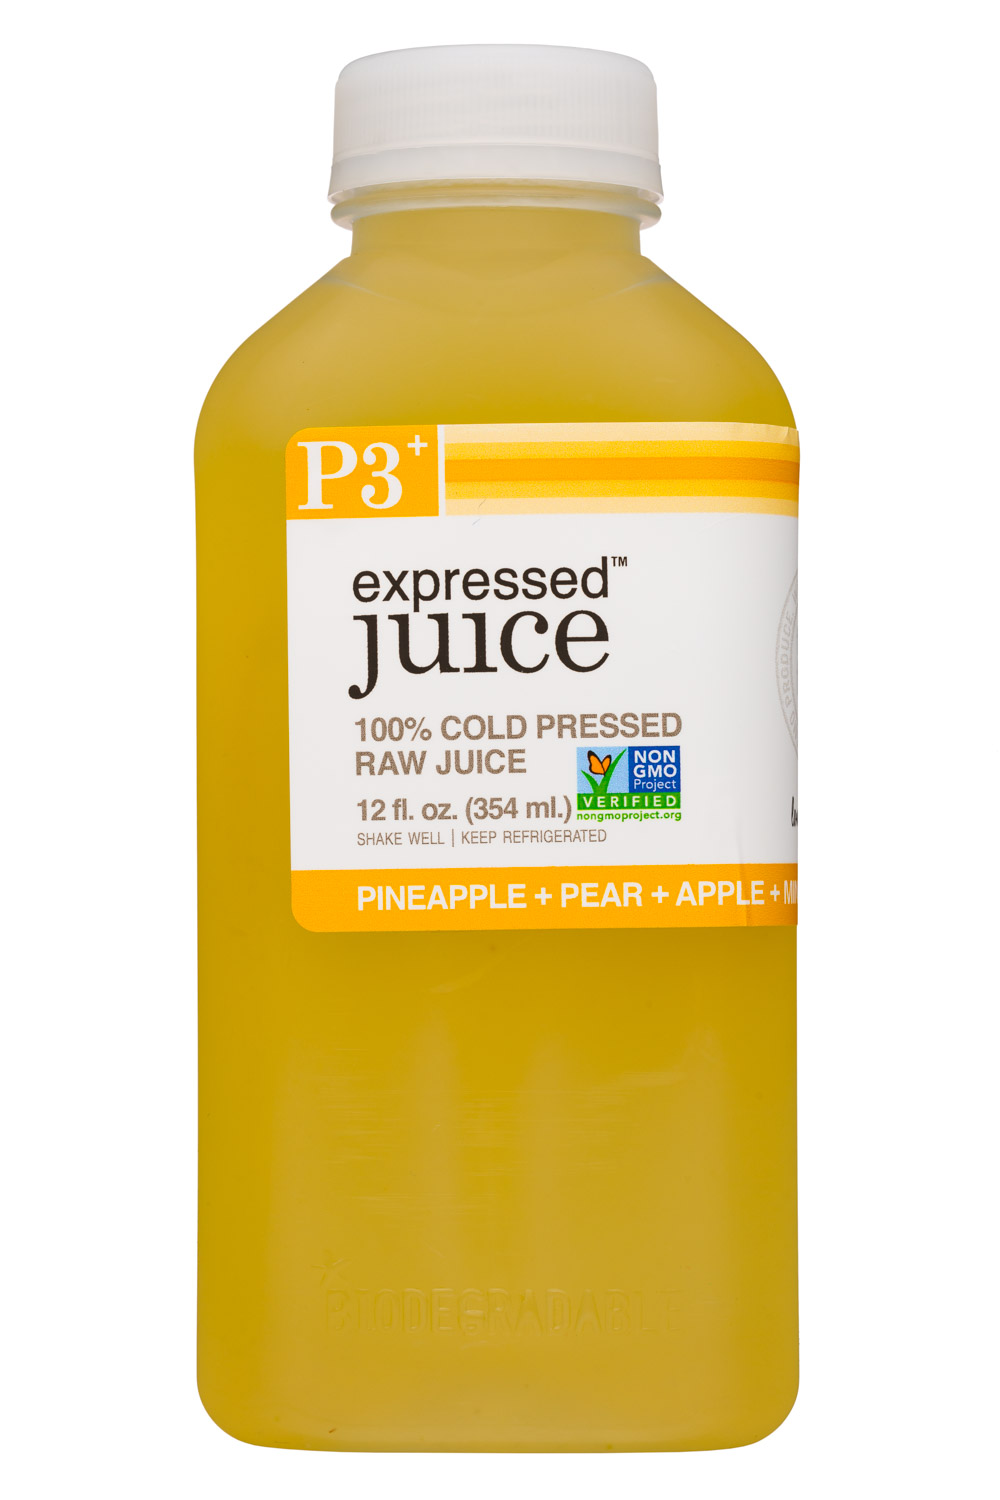 P3 - Pineapple + Pear + Apple + Mint